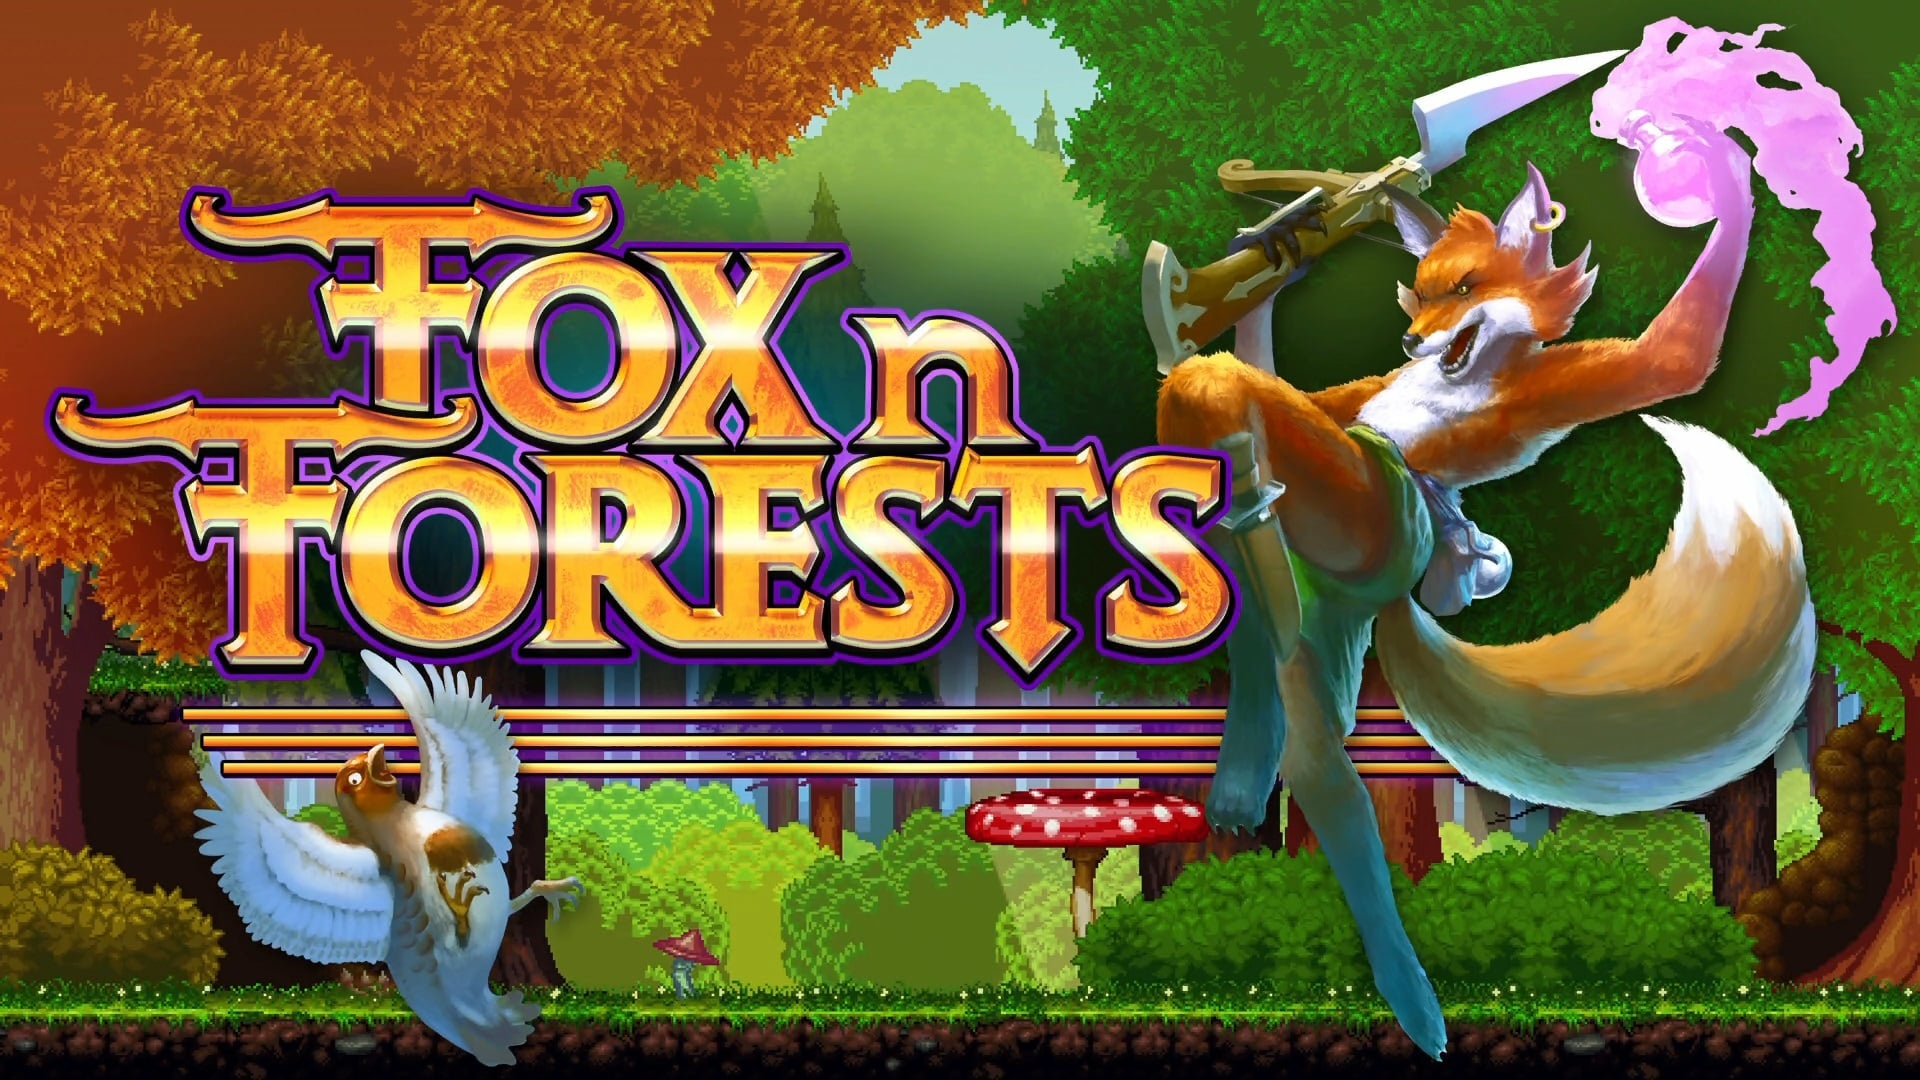 Fox n Forests (PS4) Review